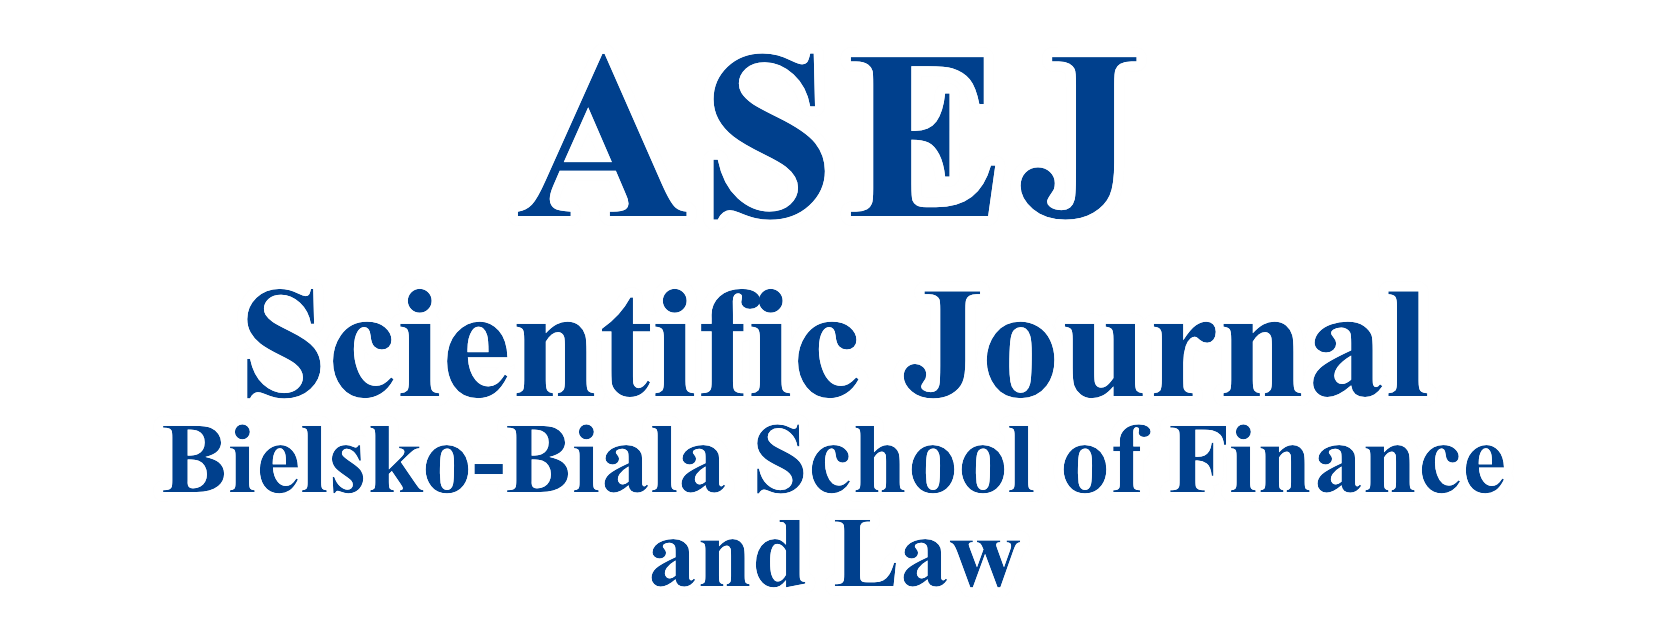 Logo of the ASEJ Journal